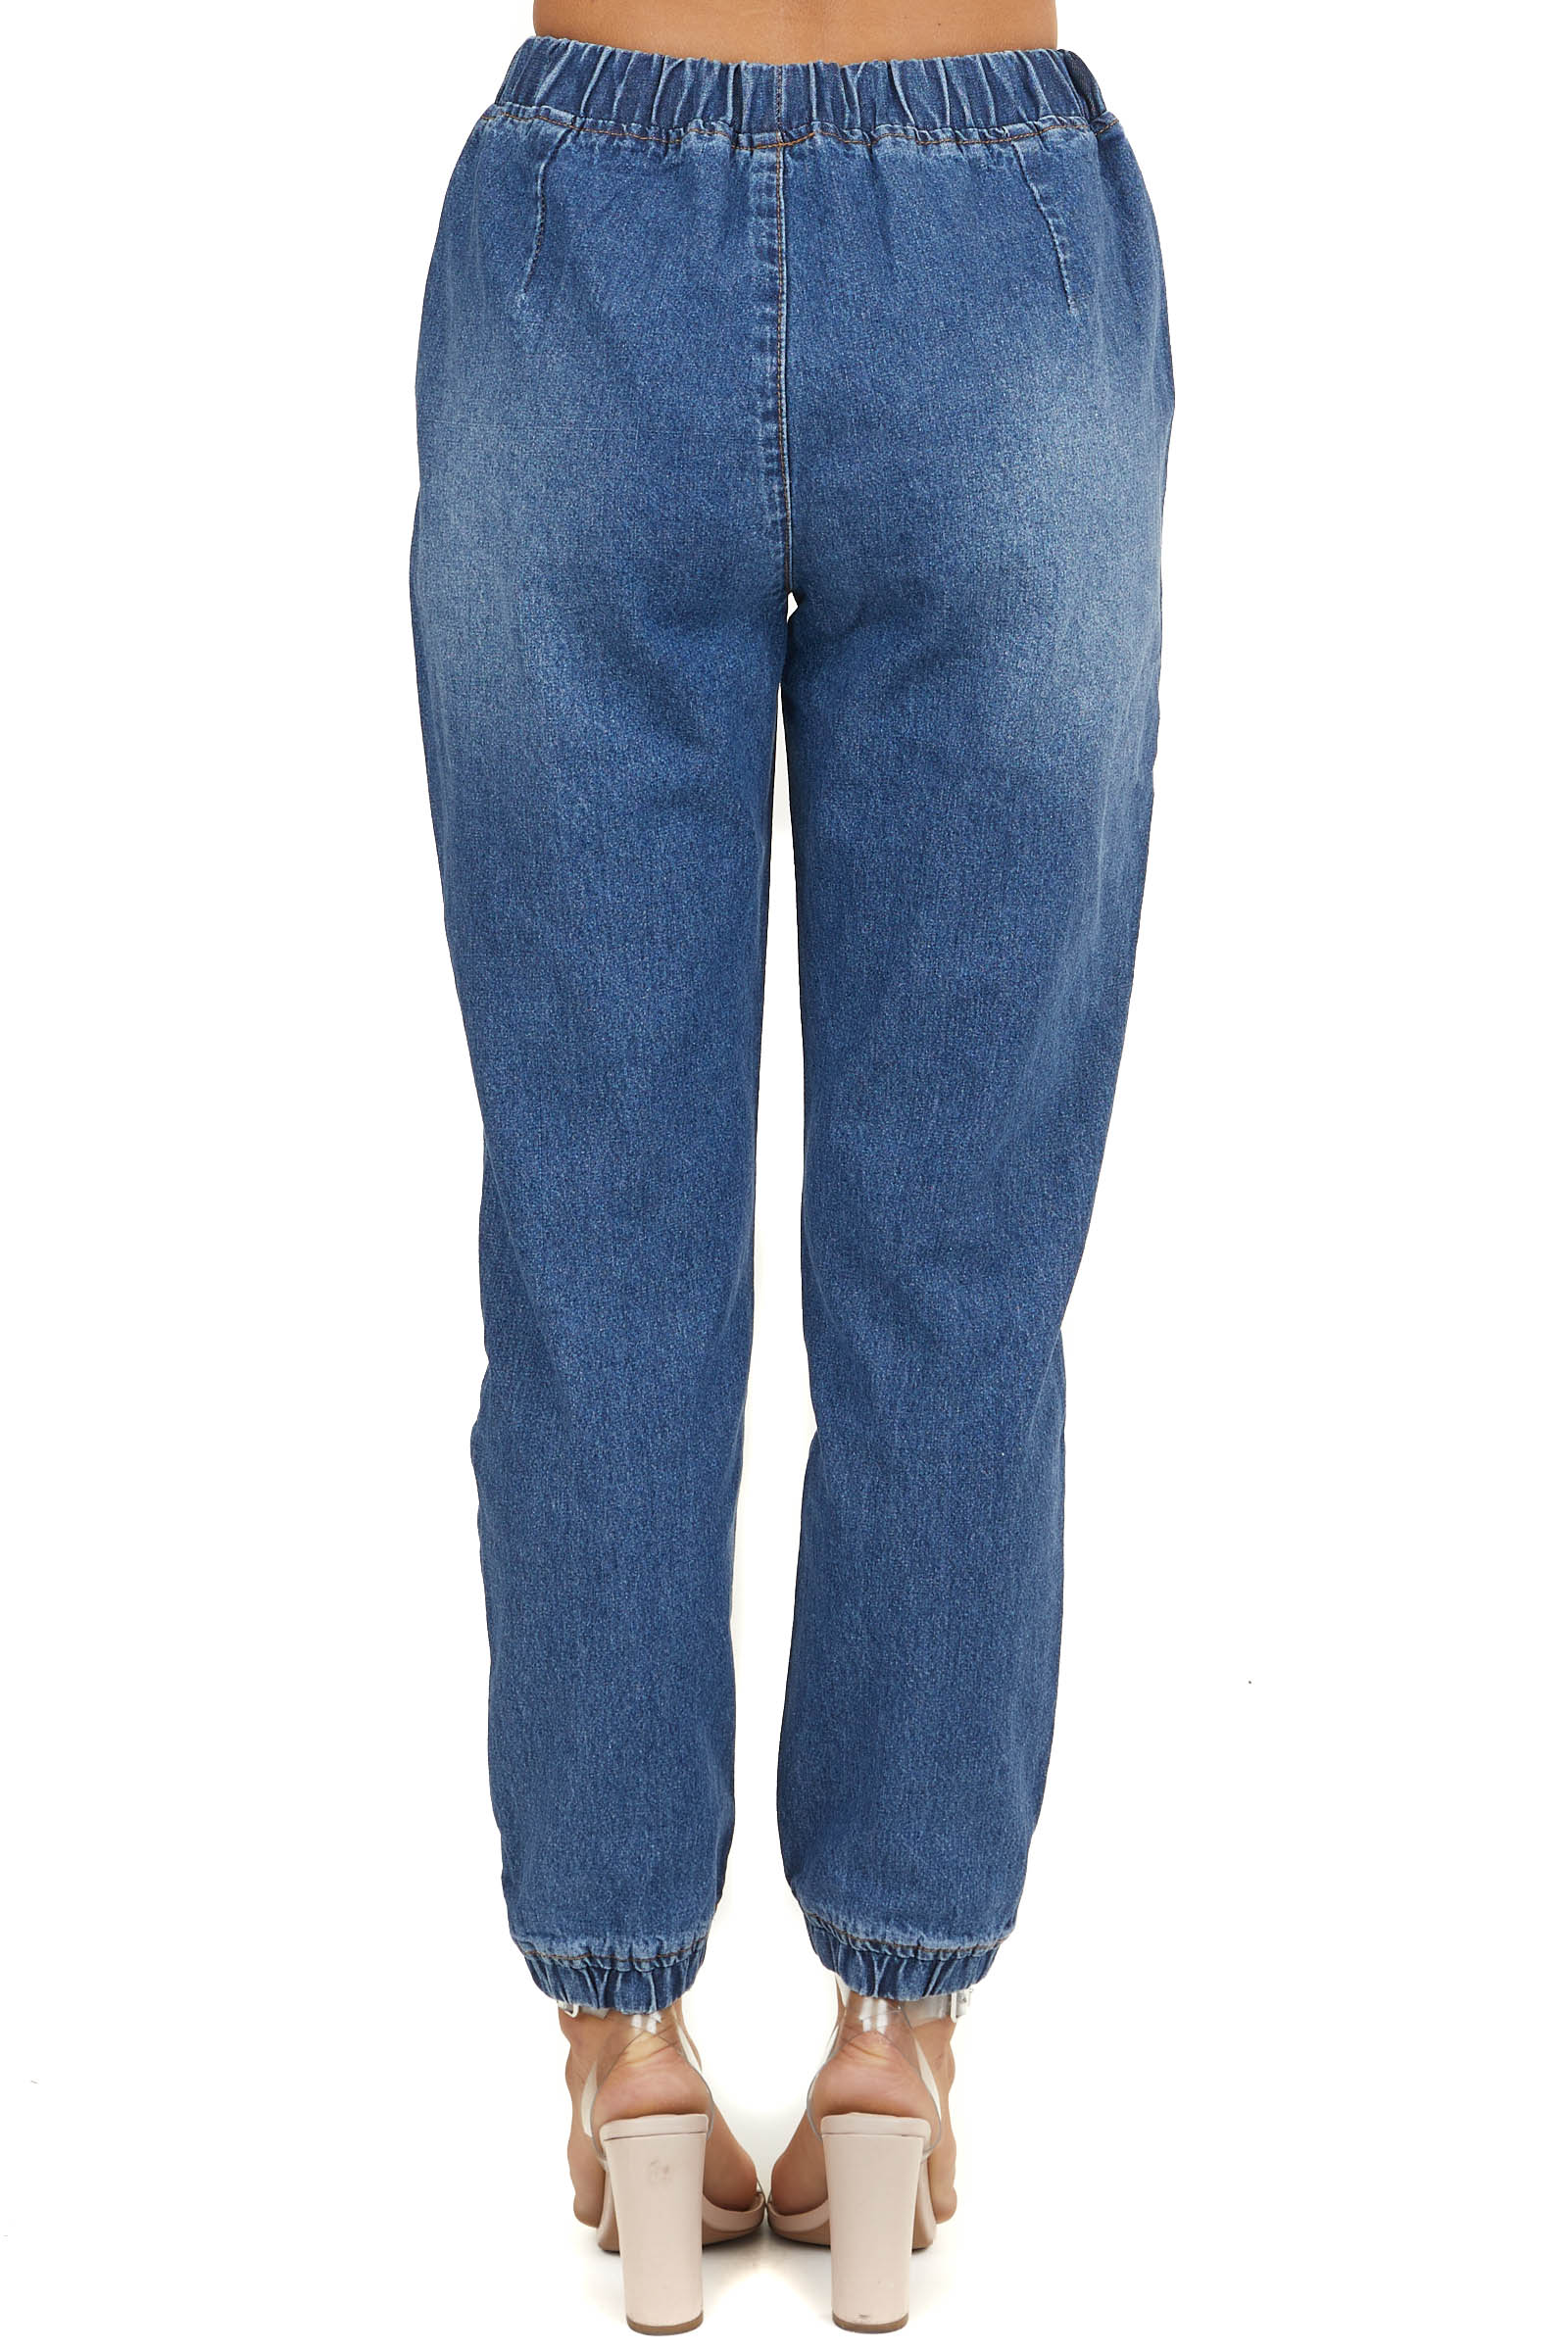 Medium Wash Denim Jogger Pants with Distressed Details